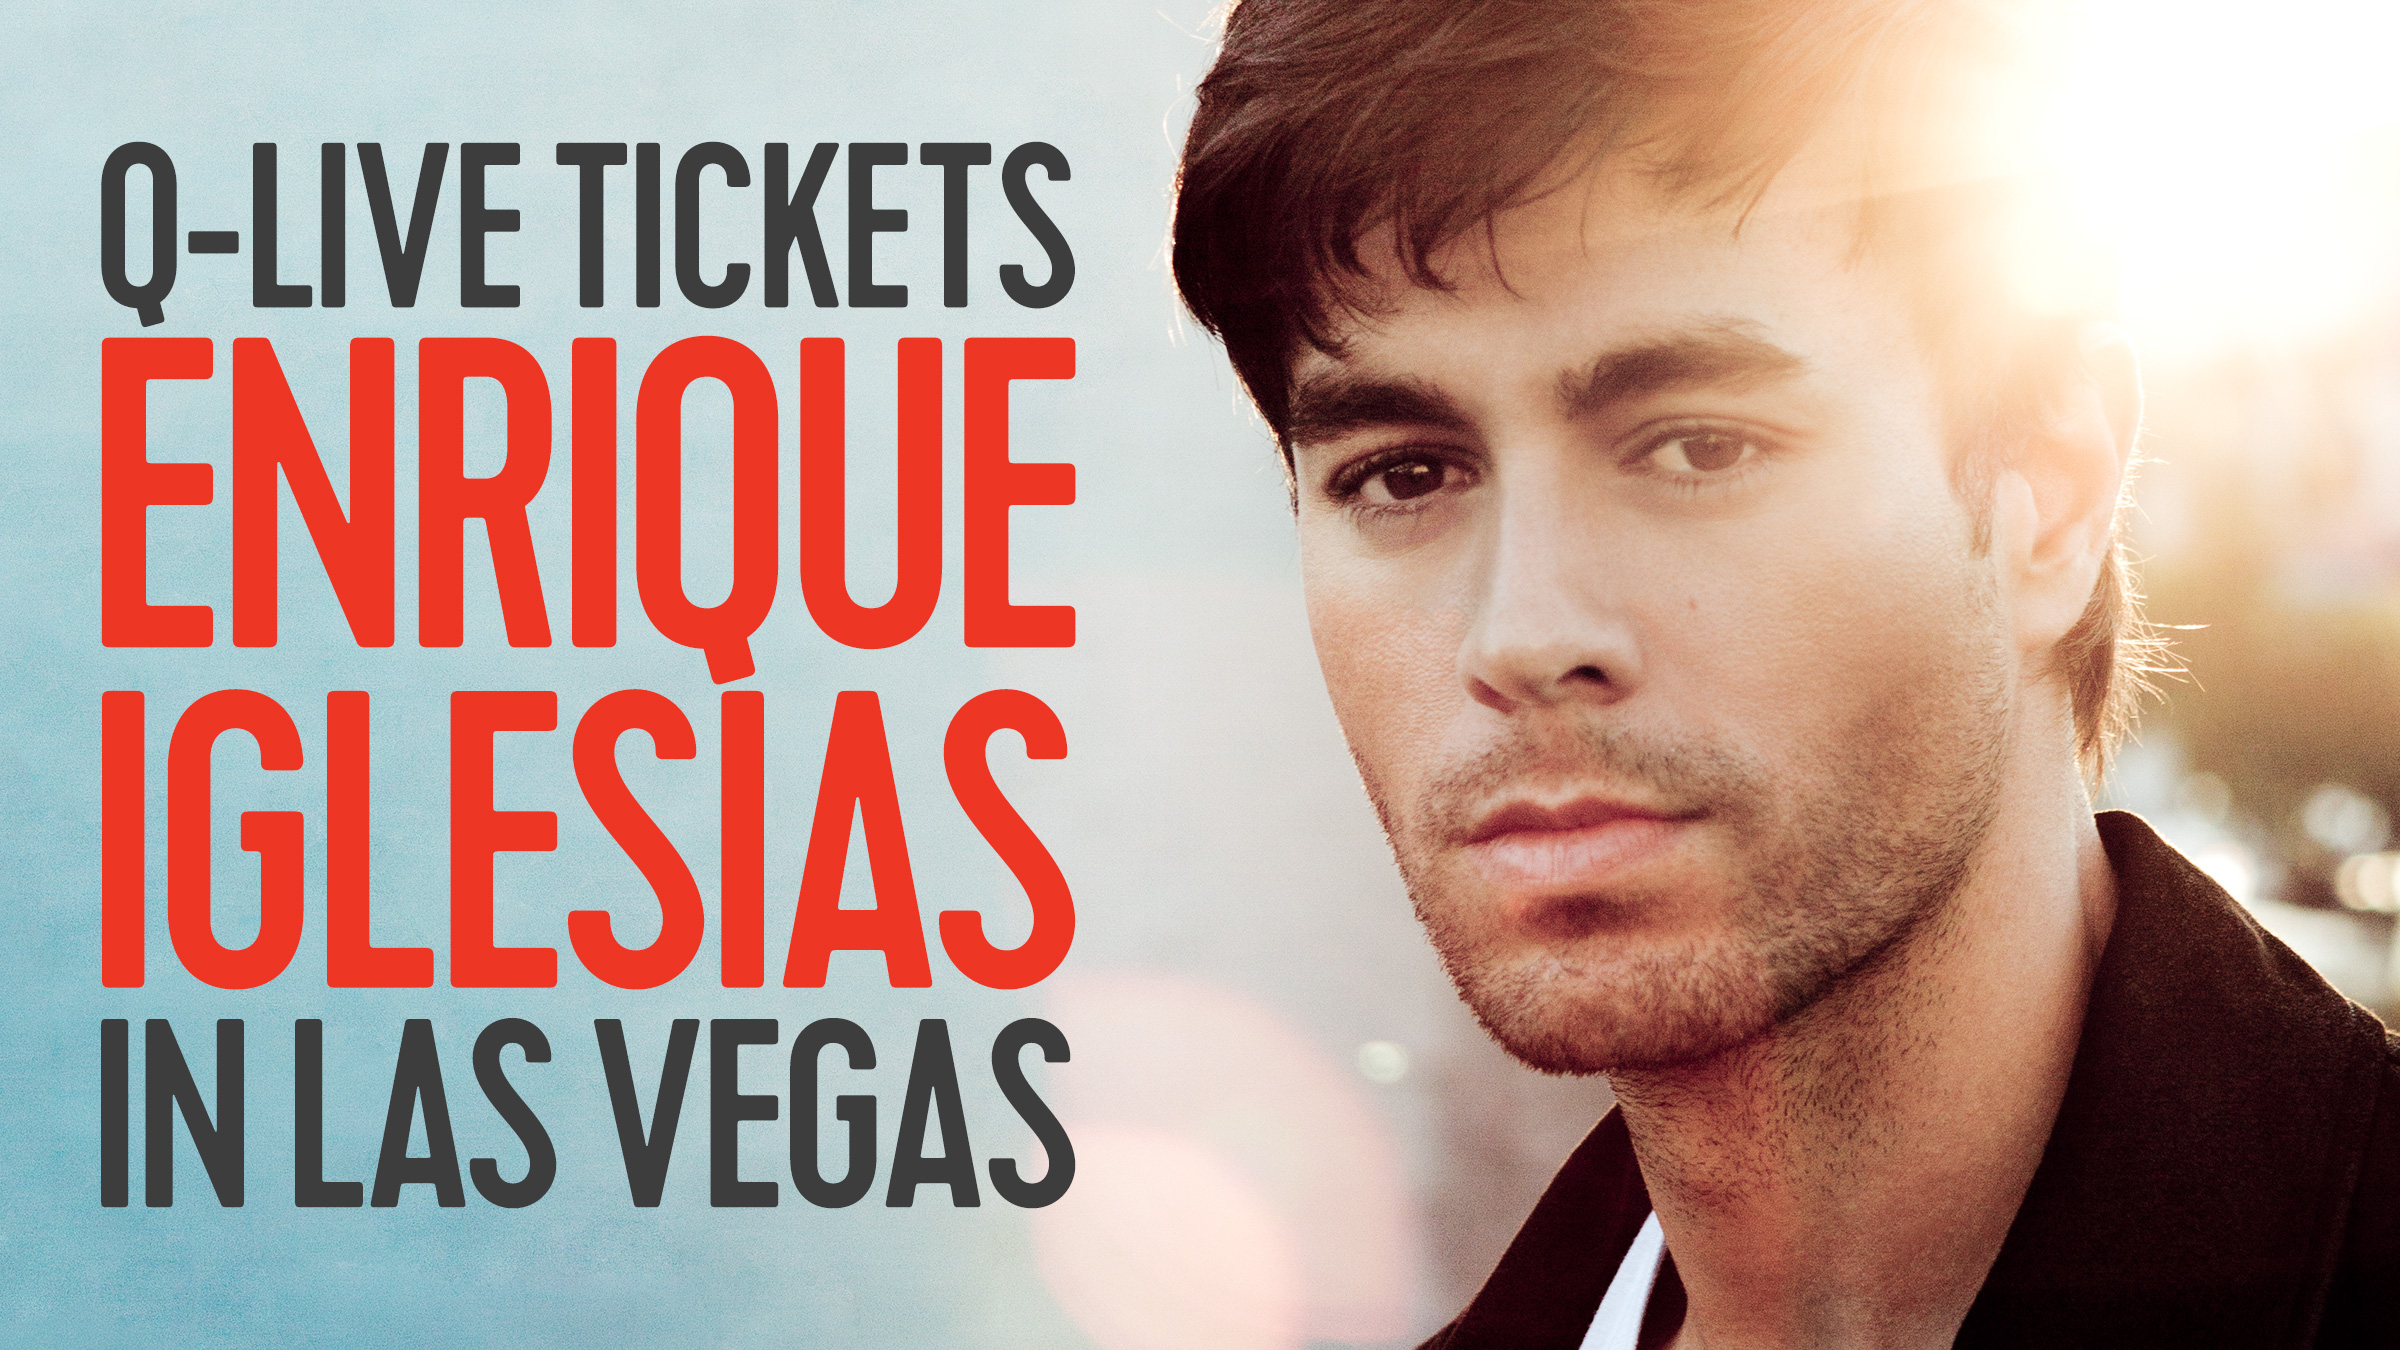 Qmusic teaser enrique